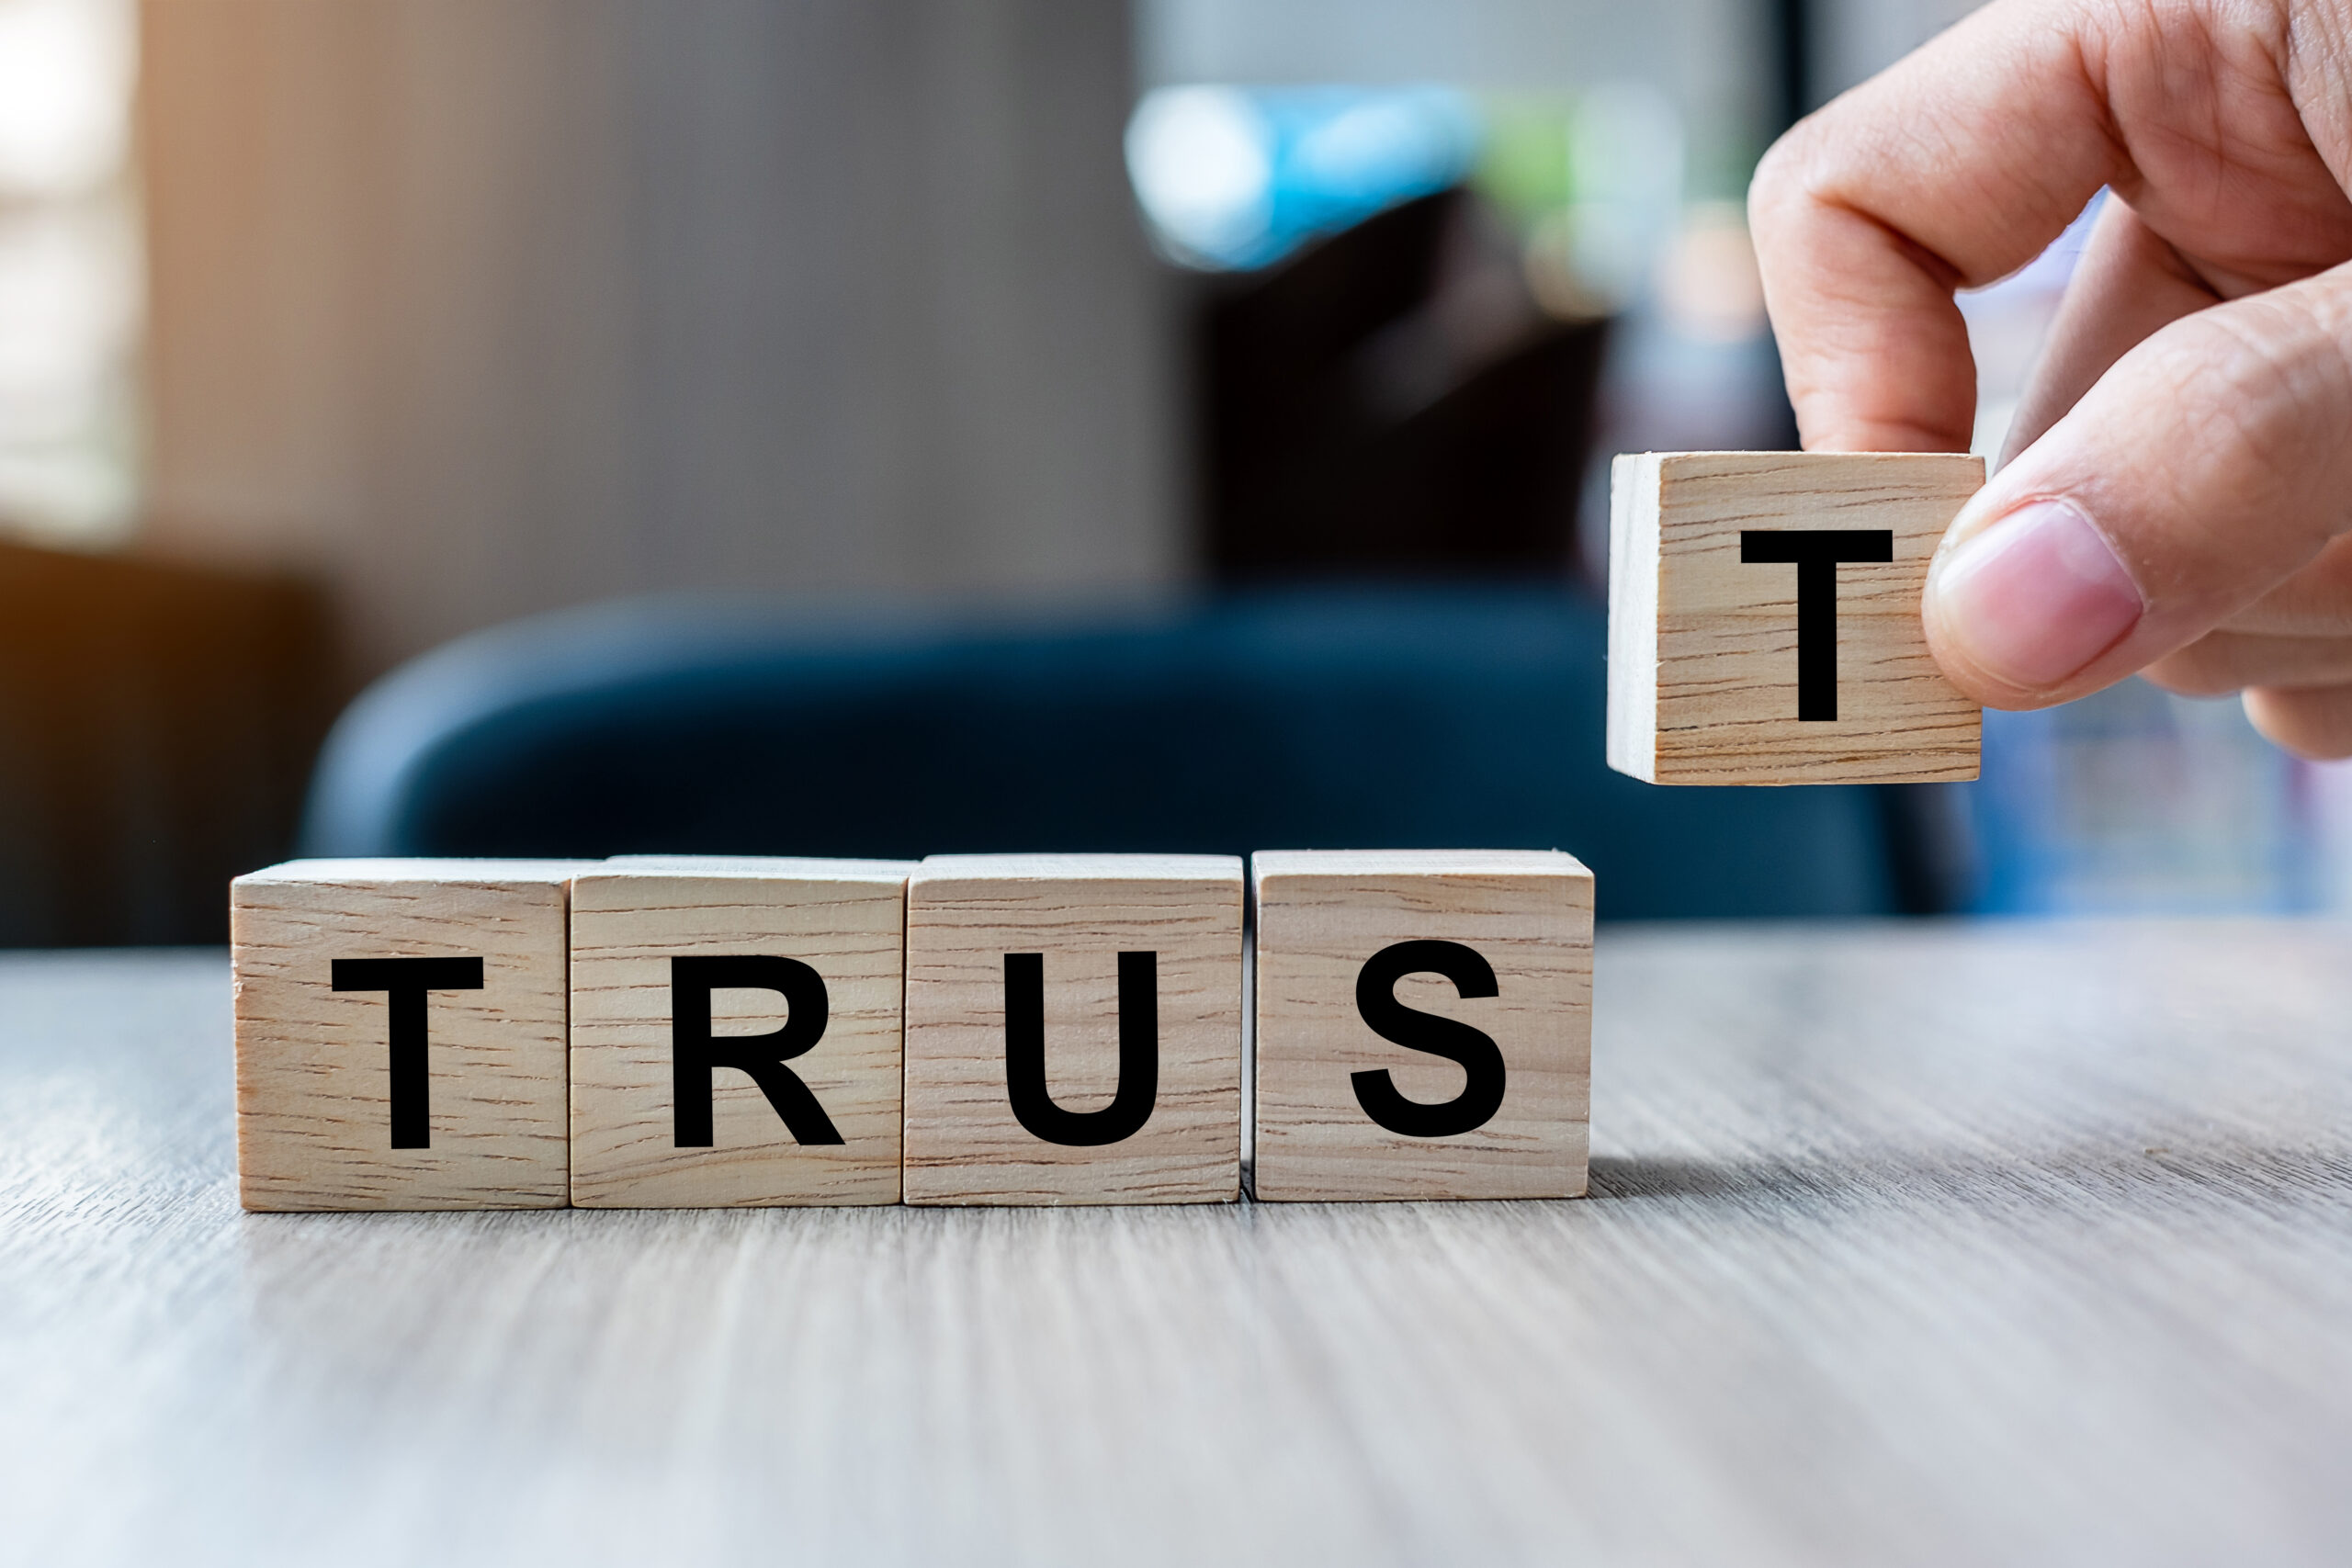 Building Trust in a Post-Pandemic World